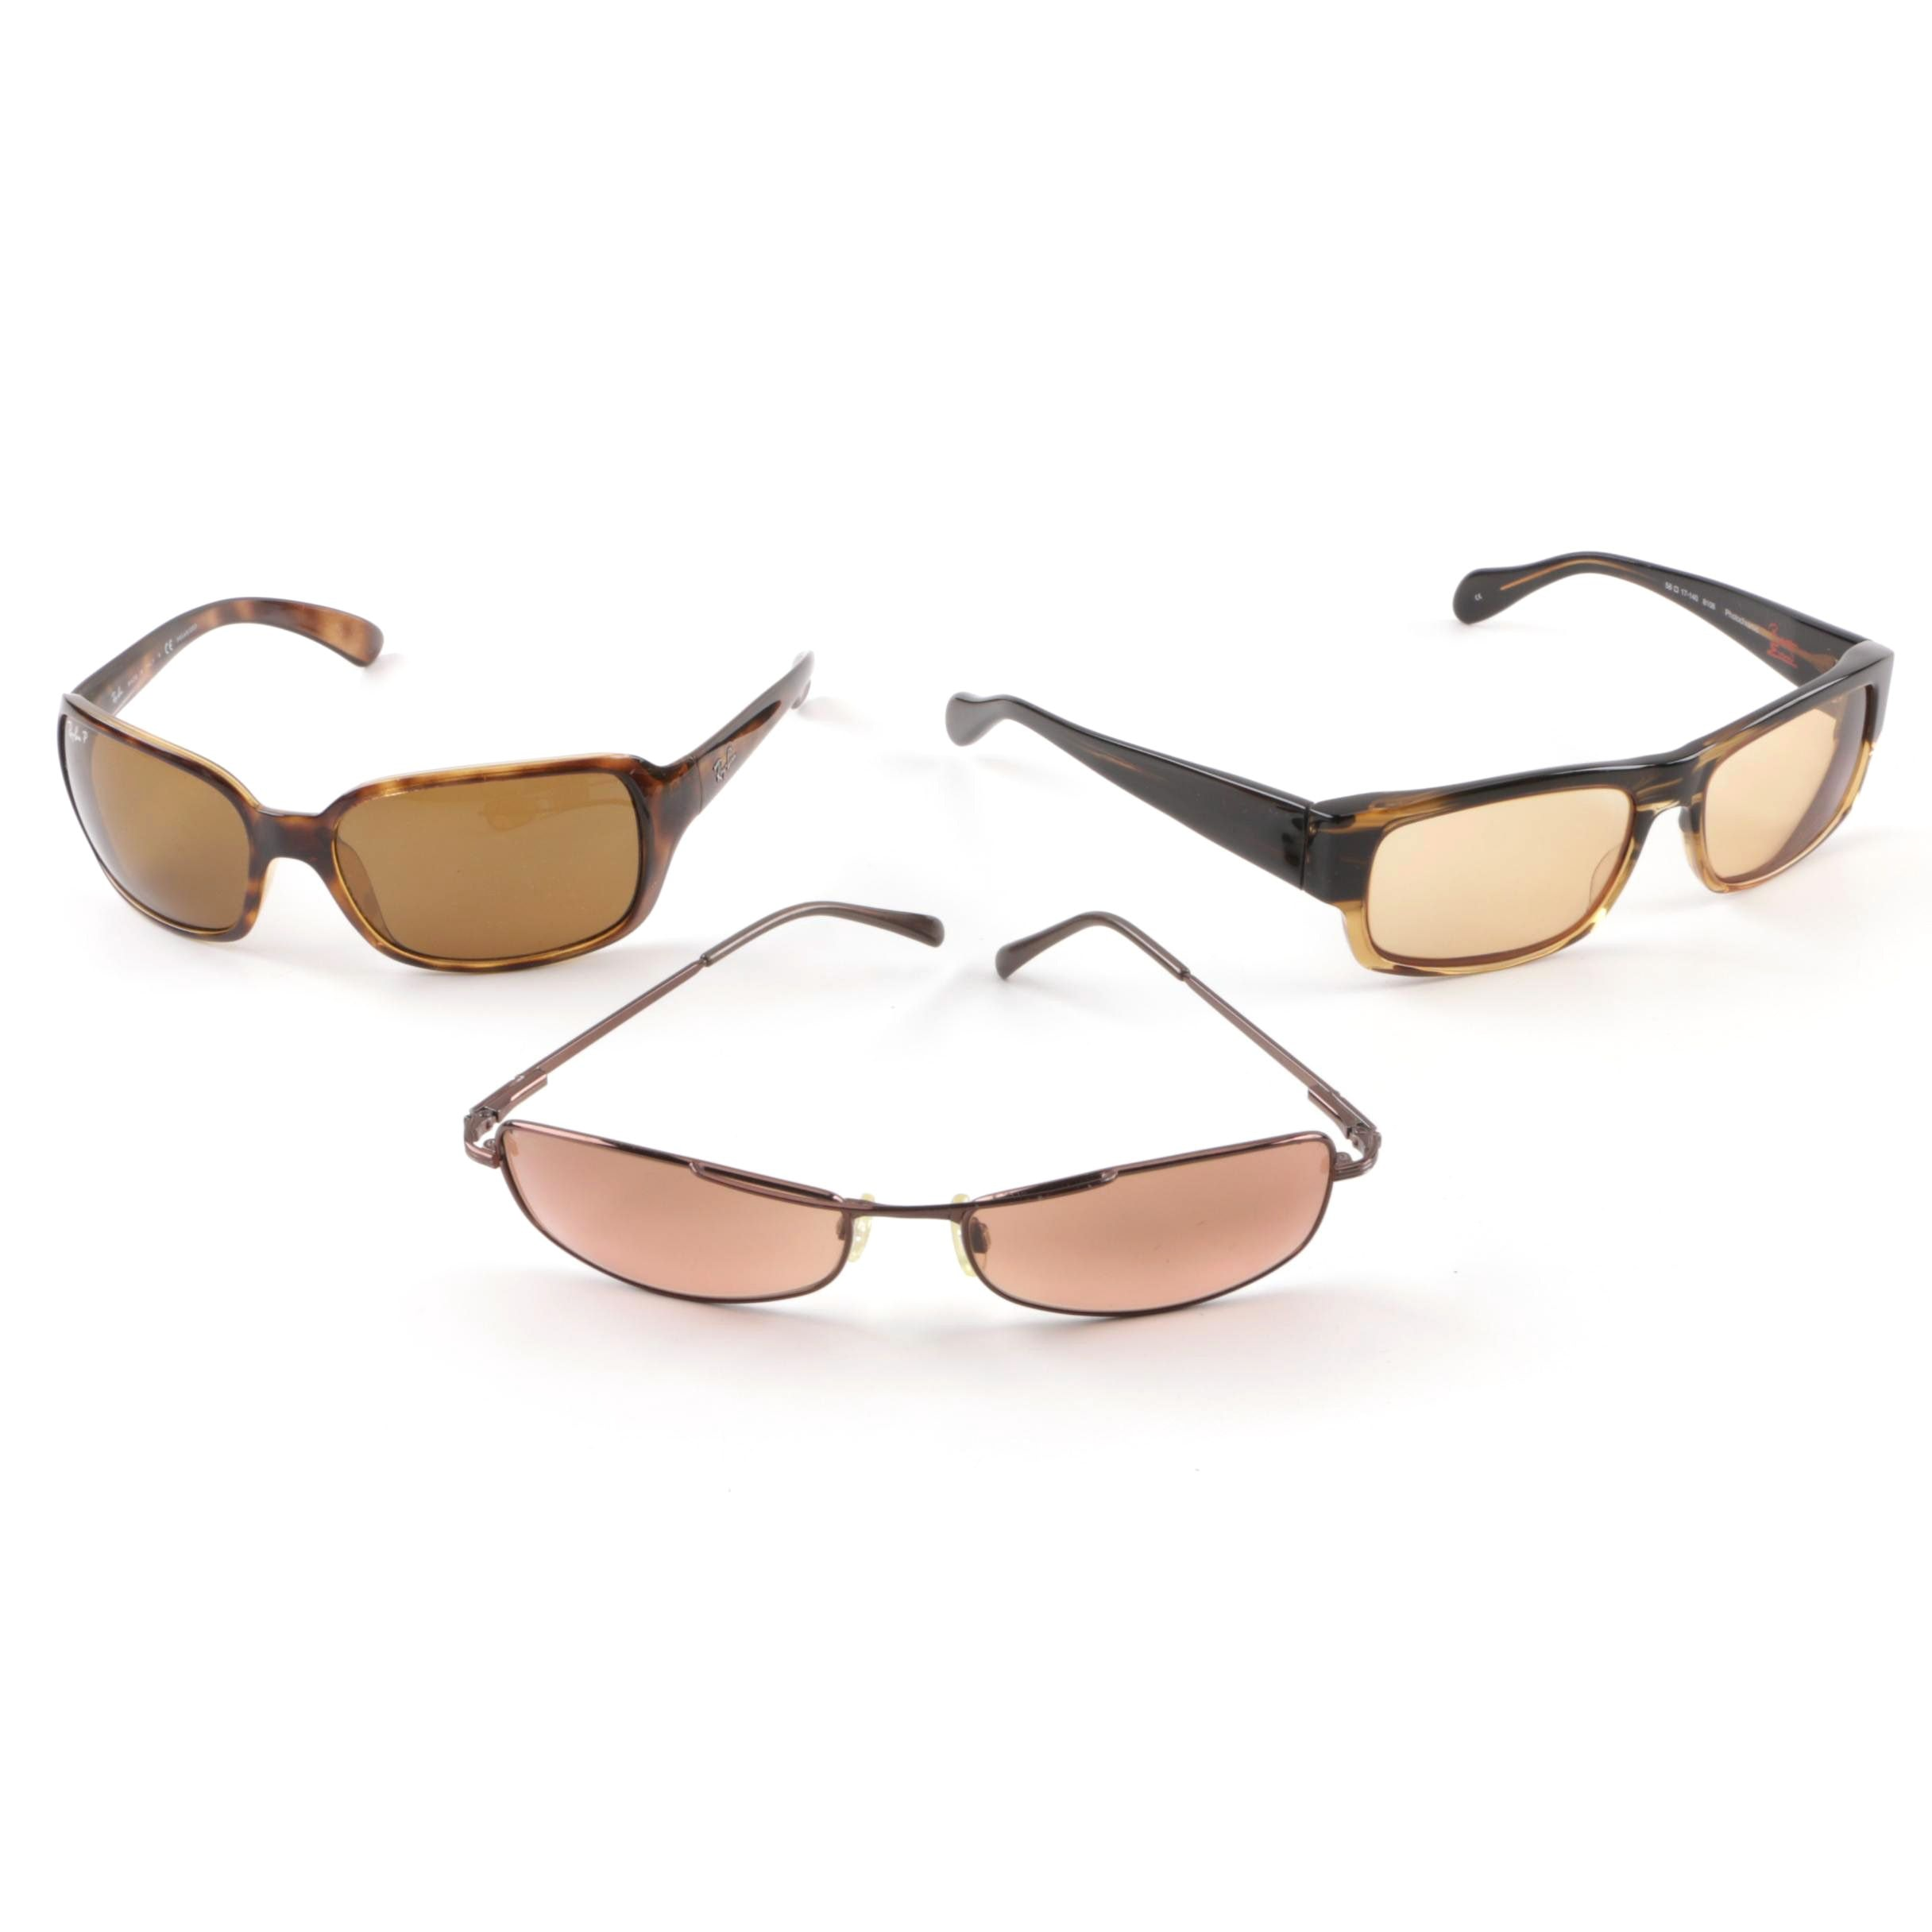 Ray-Ban, Serengeti and Robert Evans by Oliver Peoples Sunglasses